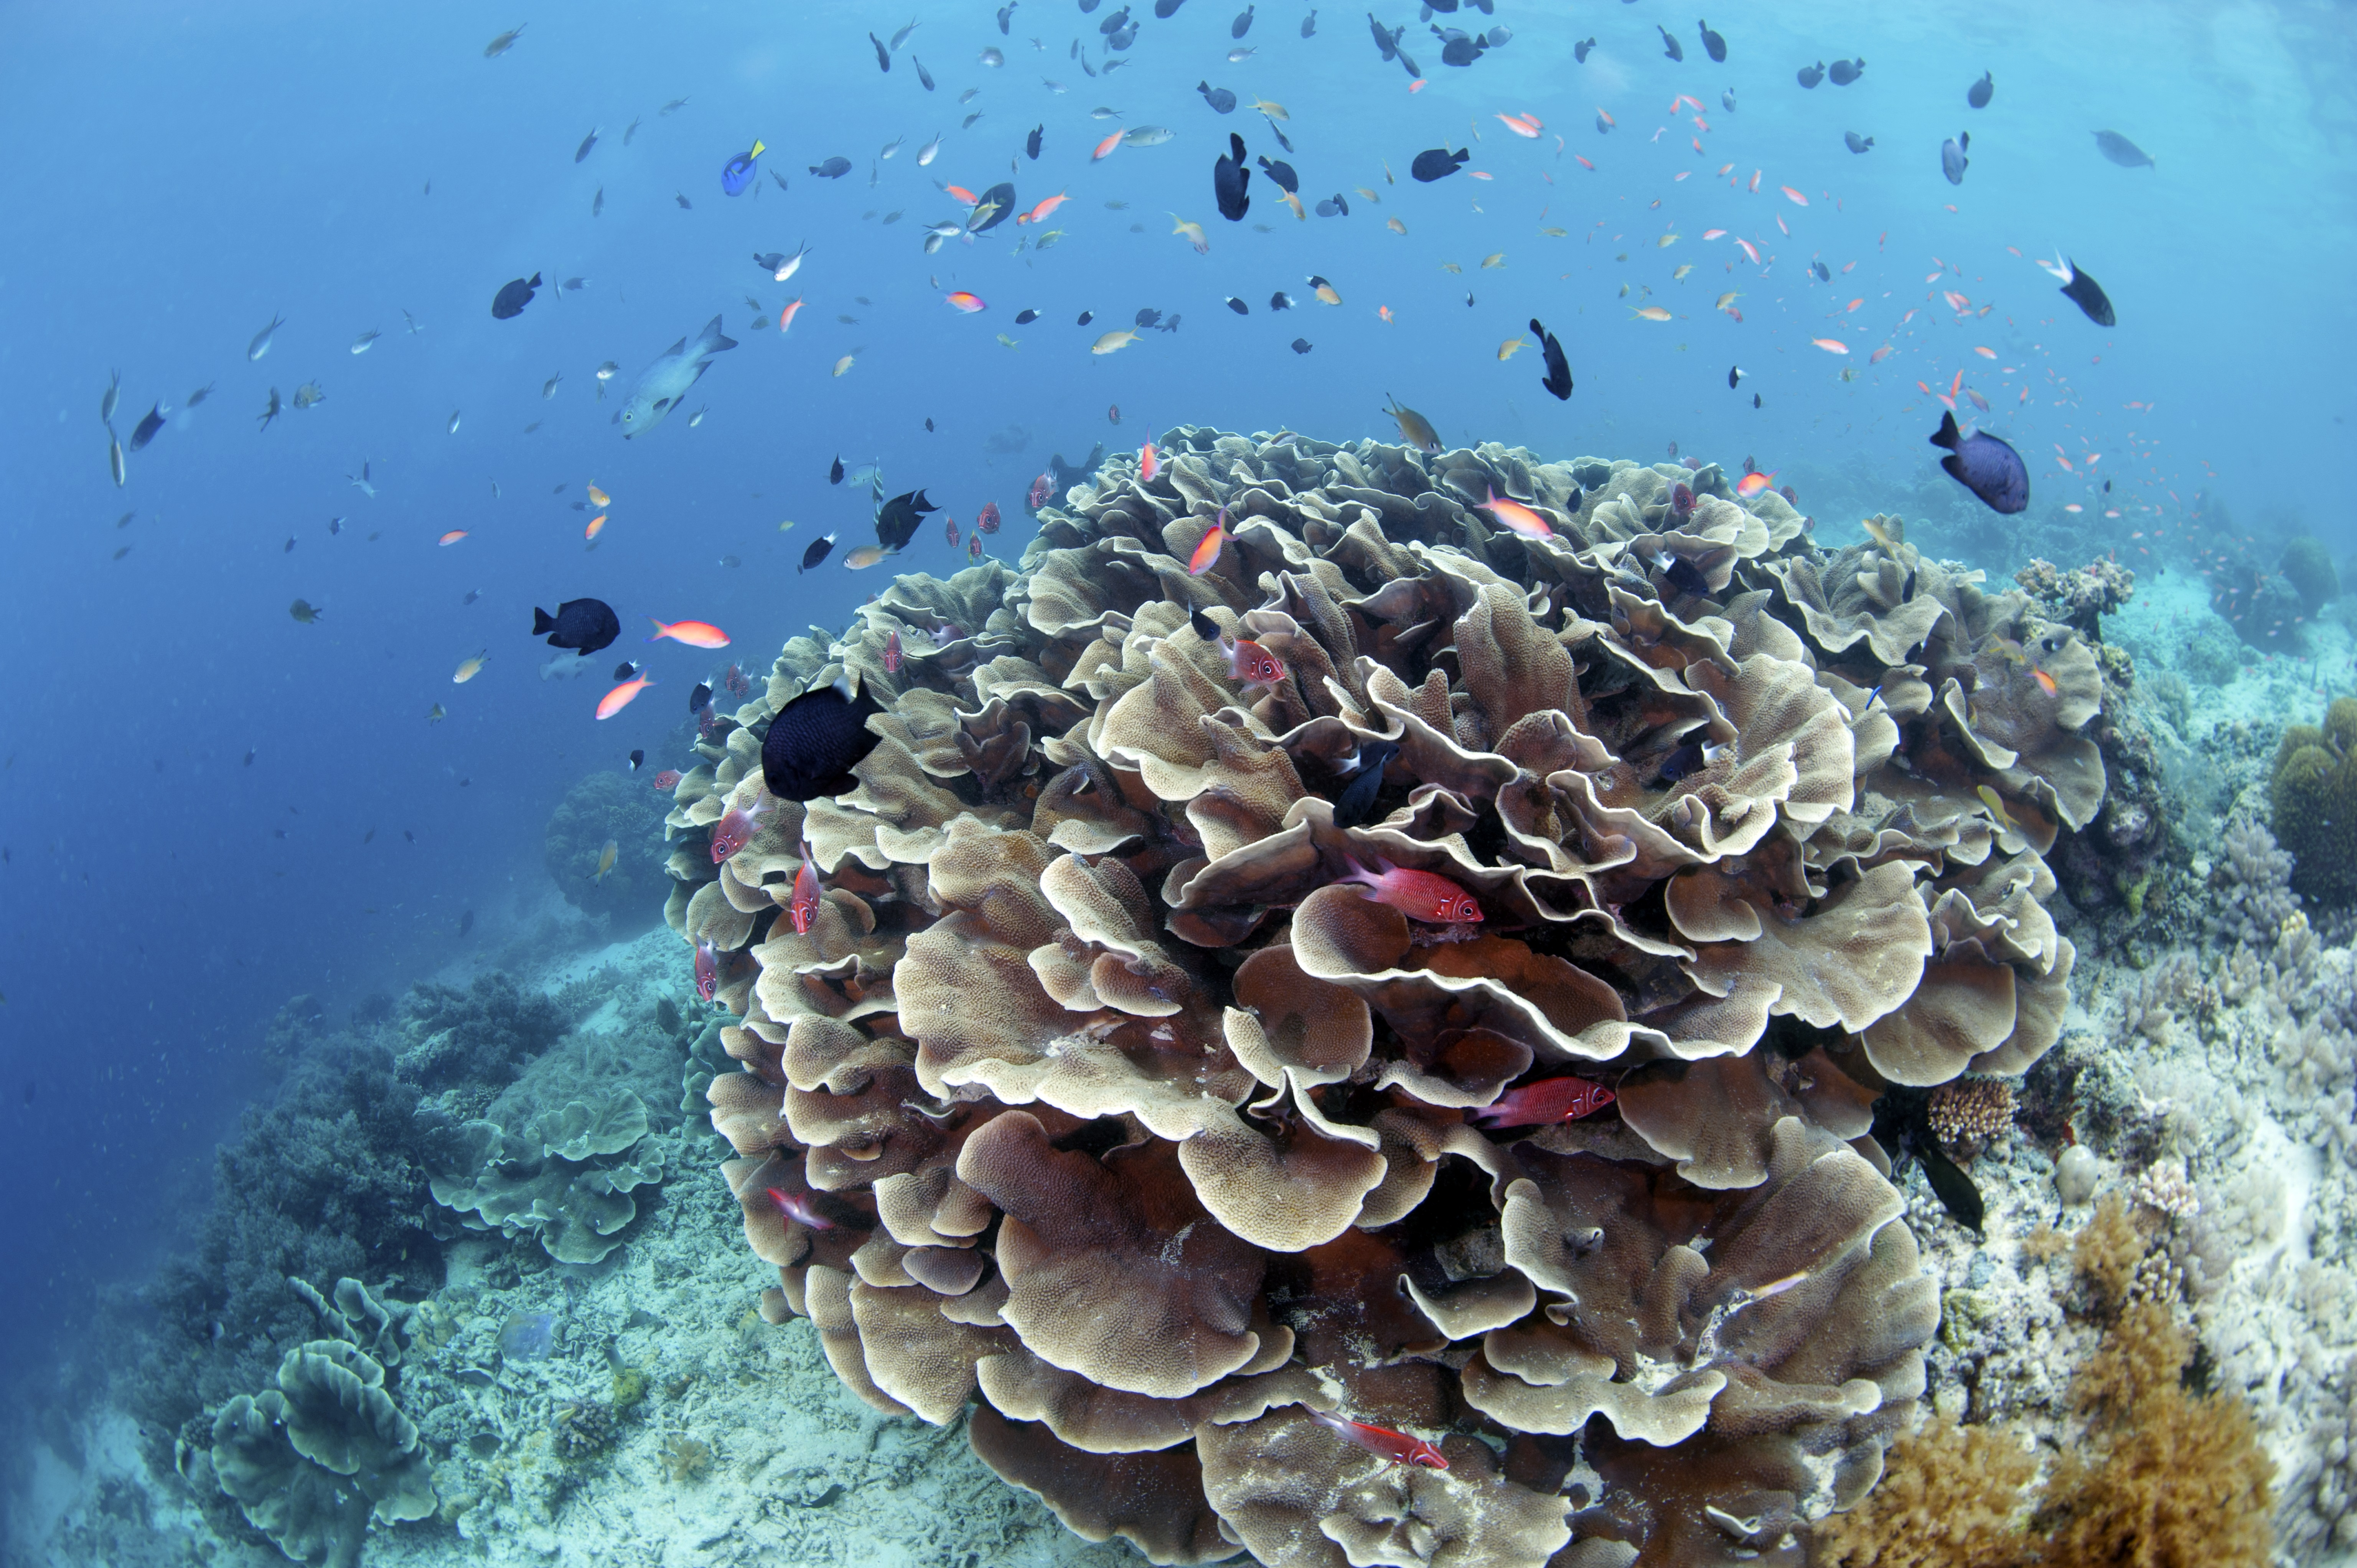 78691 download wallpaper Nature, Reefs, Water, Fishes, Coral screensavers and pictures for free